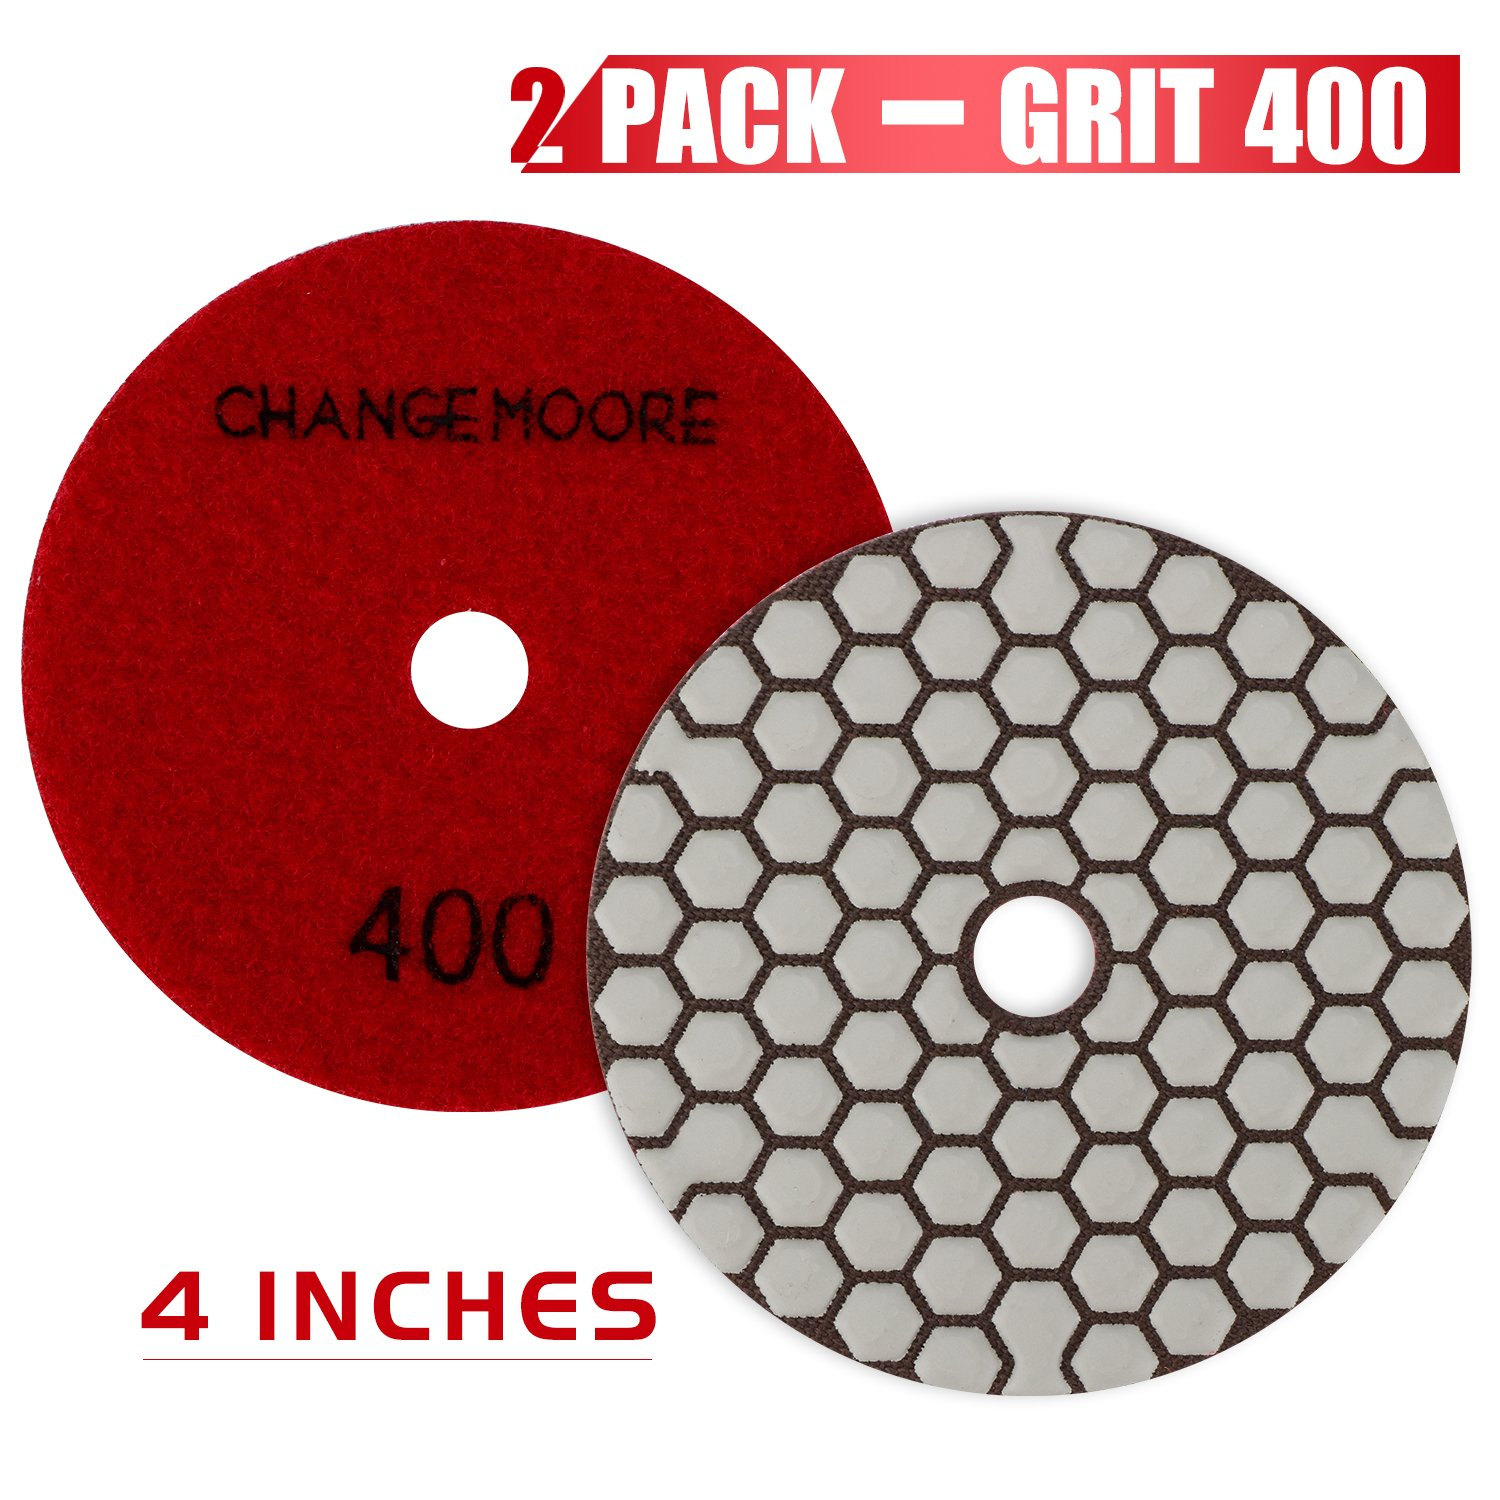 CHANGE MOORE Dry Diamond Polishing Pads 4'' for Marble Granite Travertine Terrazzo Concrete Stones, 2 pack-Grit 400